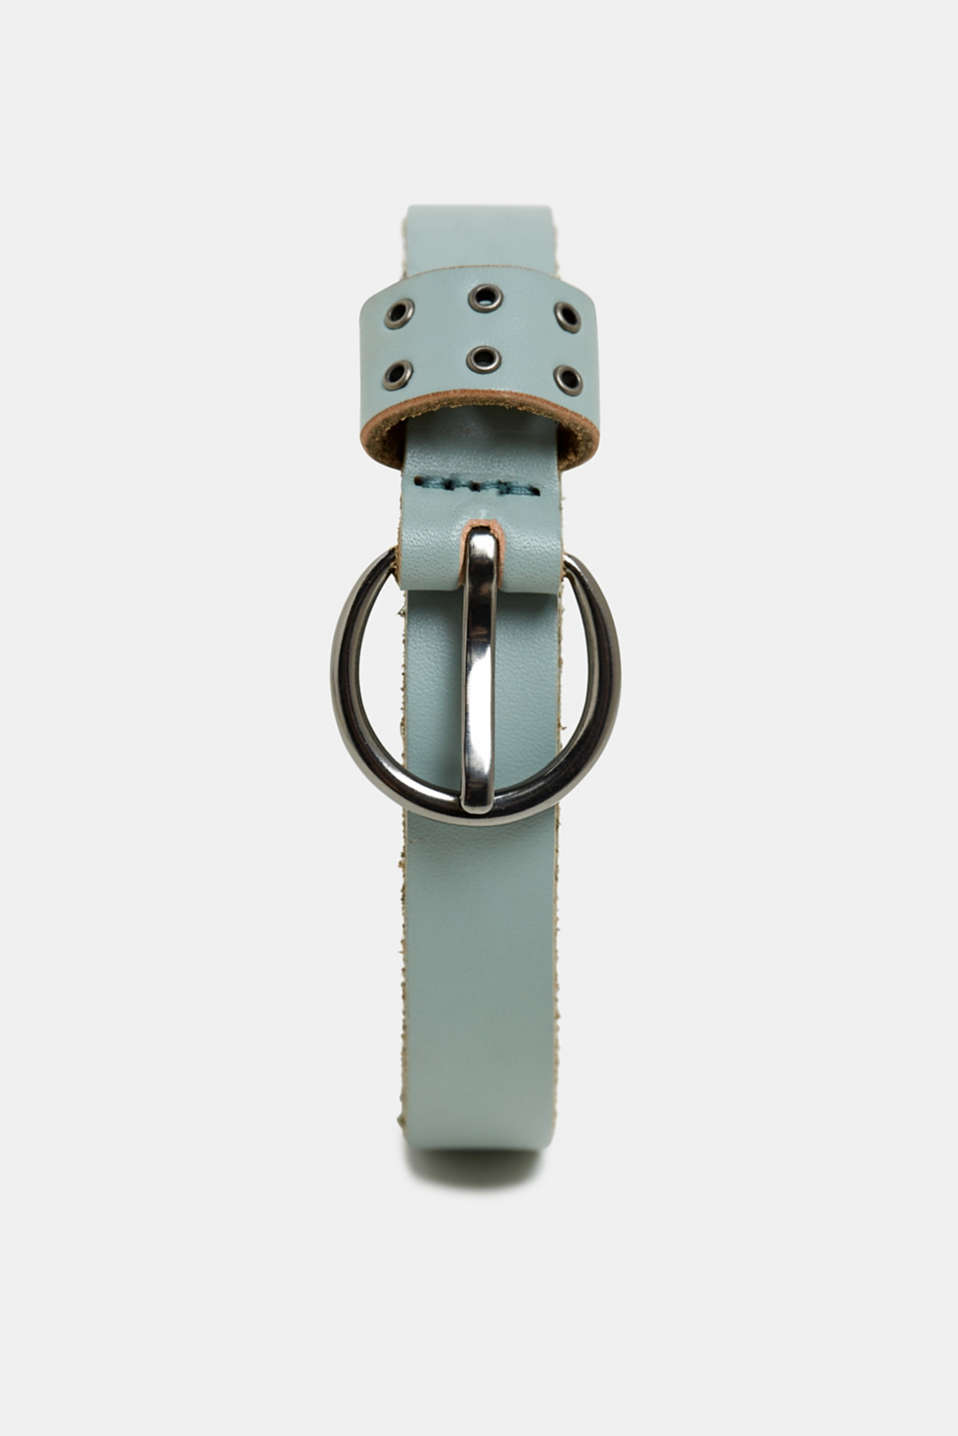 edc - Narrow belt with studs, made of chromium-free leather